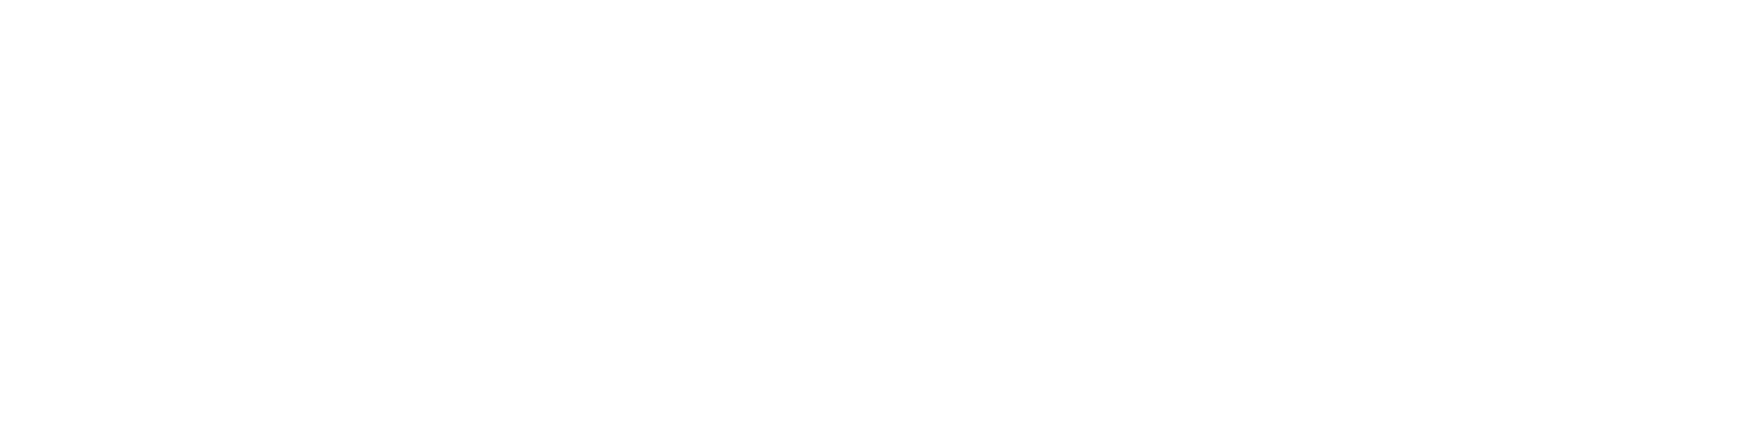 Romaeuropa